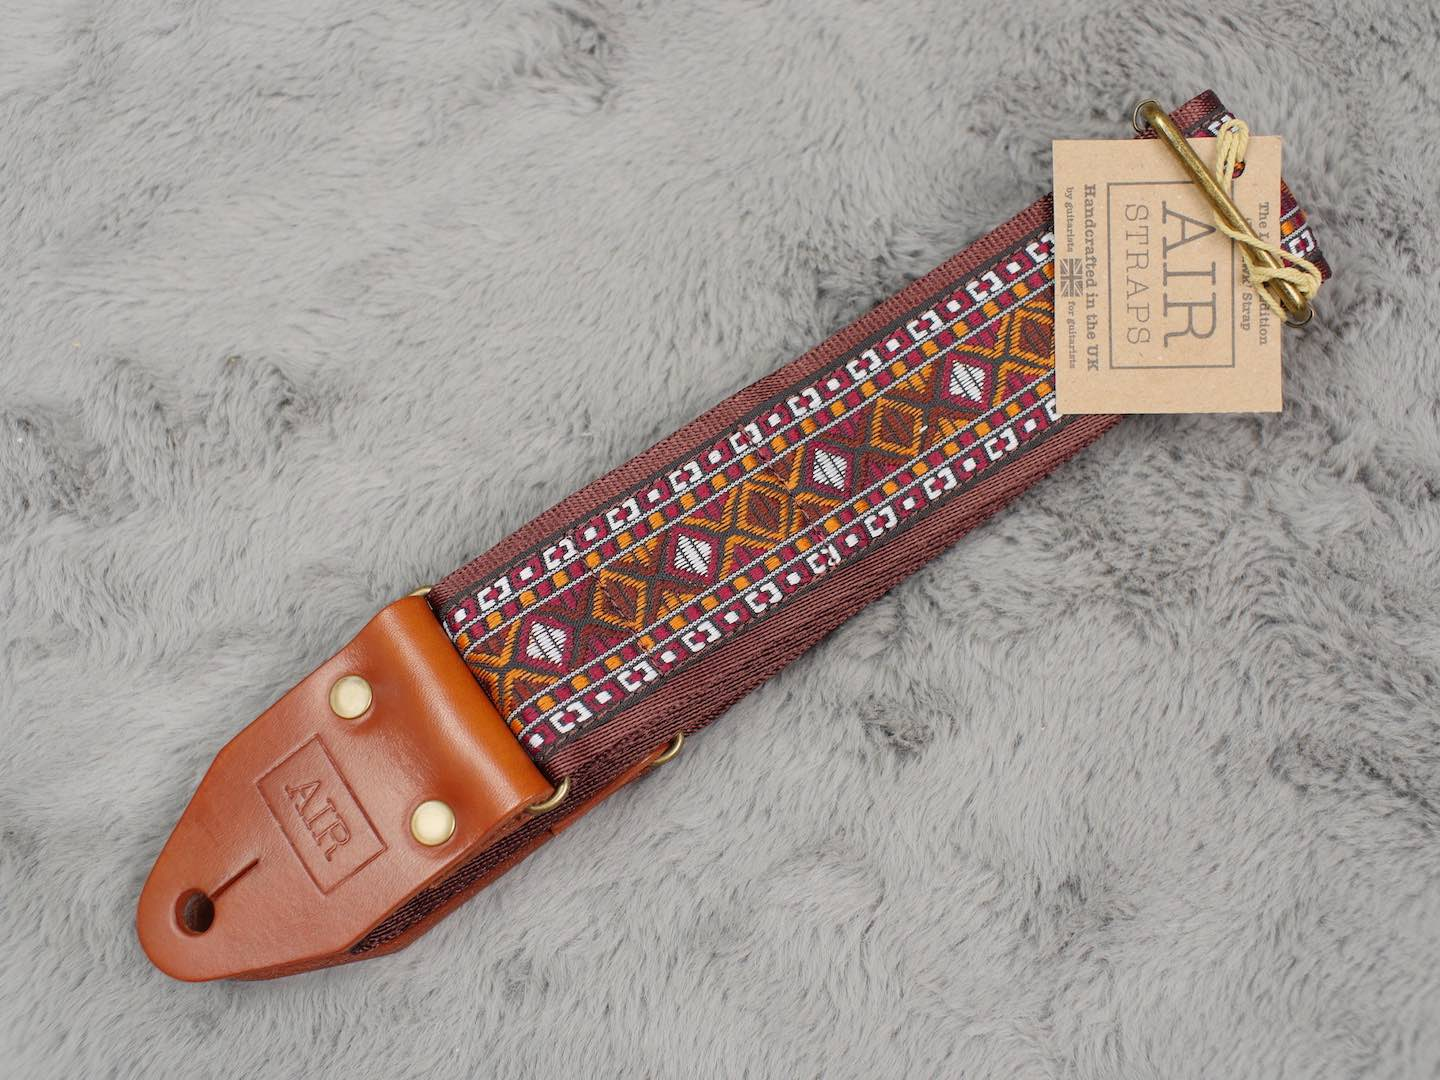 Air Straps Limited Edition 'Mohawk' Guitar Strap - Free Shipping!